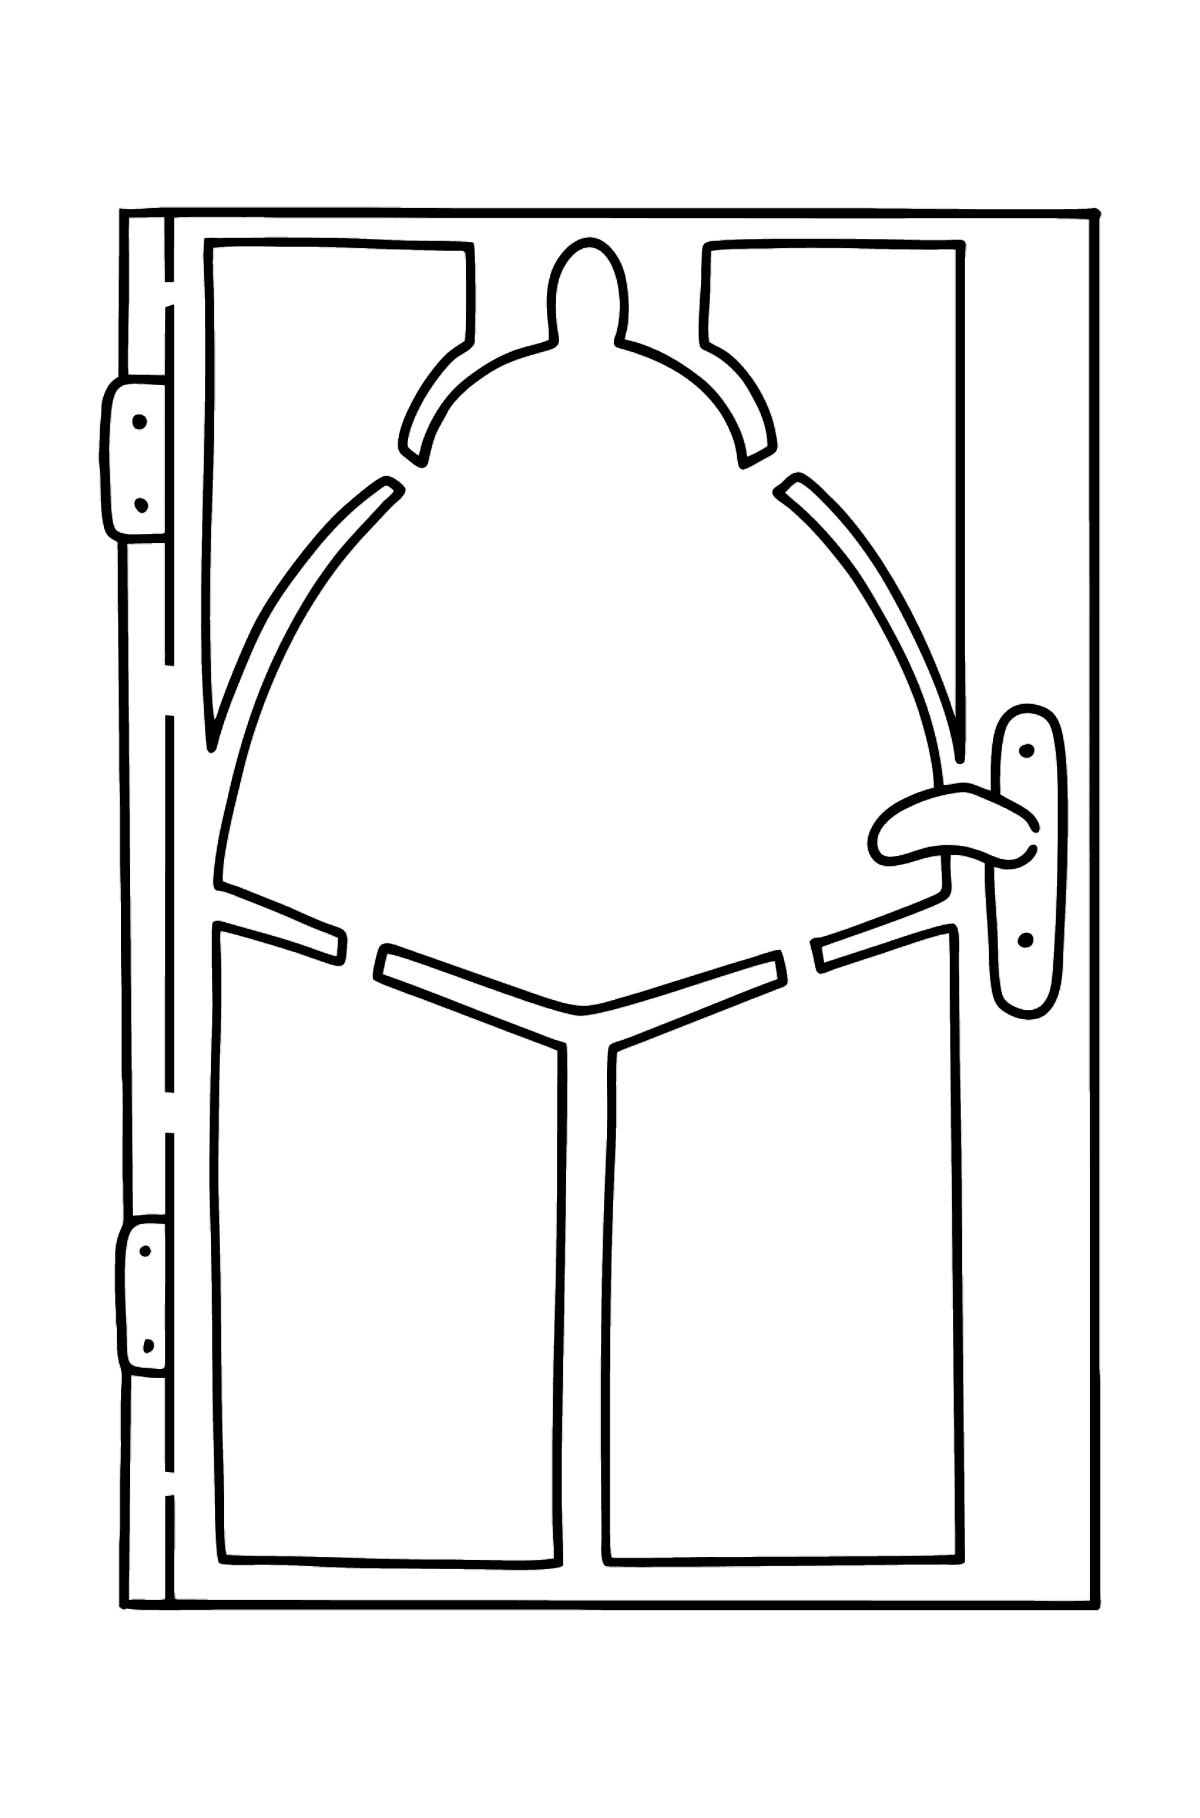 Door coloring page - Coloring Pages for Kids